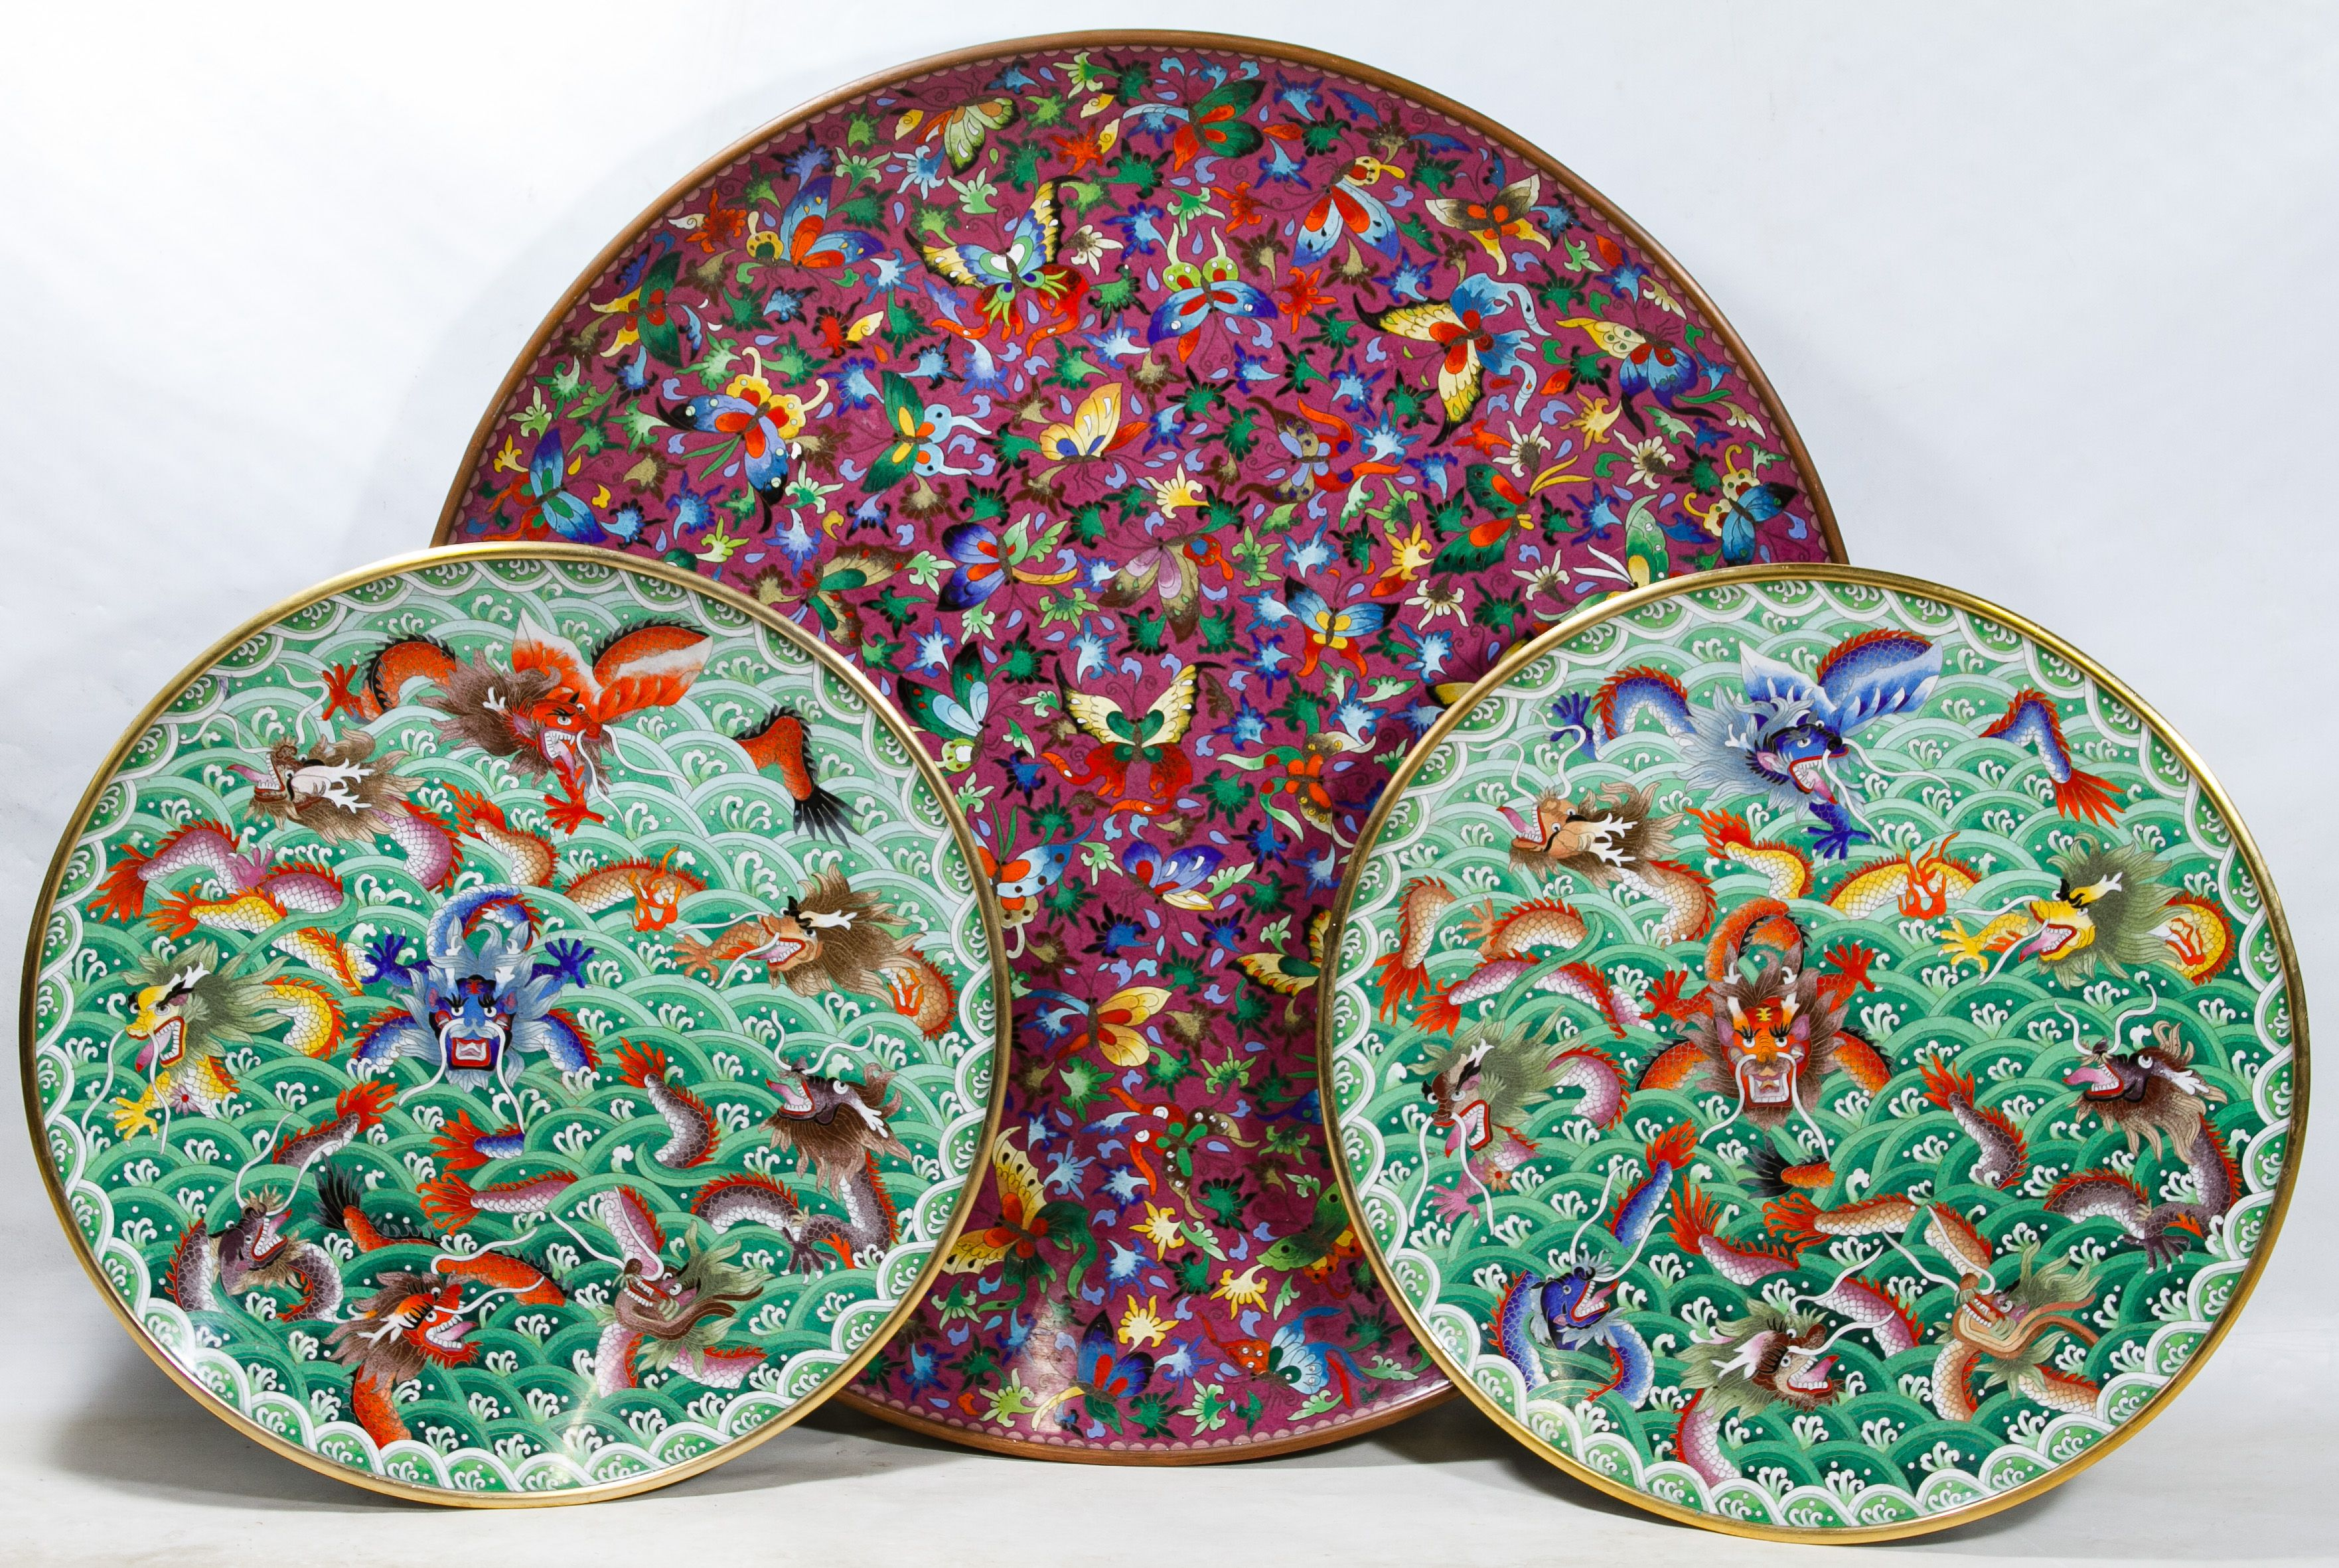 Lot 472: Asian Cloisonne Charger Assortment; Contemporary items including two small green dragon chargers and a large red charger with butterflies